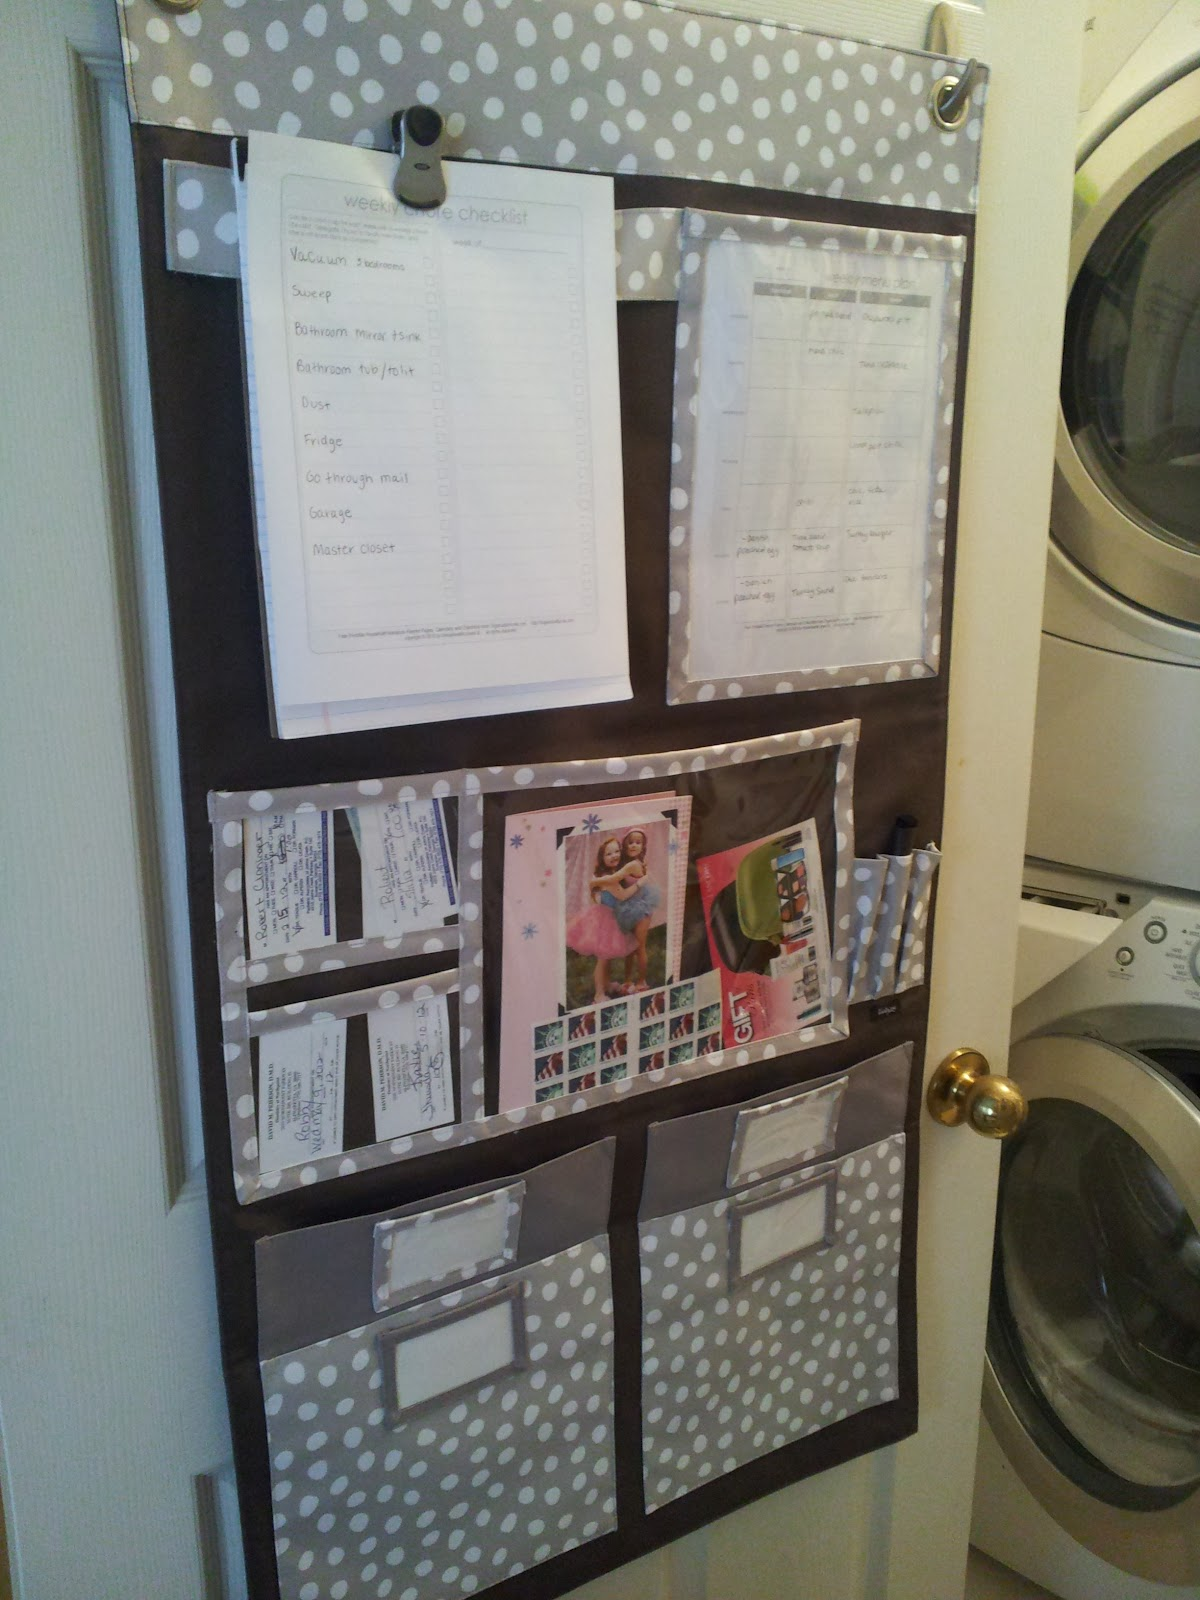 Love My New Wall Organizer On Laundry Room Door This Helps Keep Fridge Clutter Free Clear Pockets Allow For Apt Reminder Cards And The Large